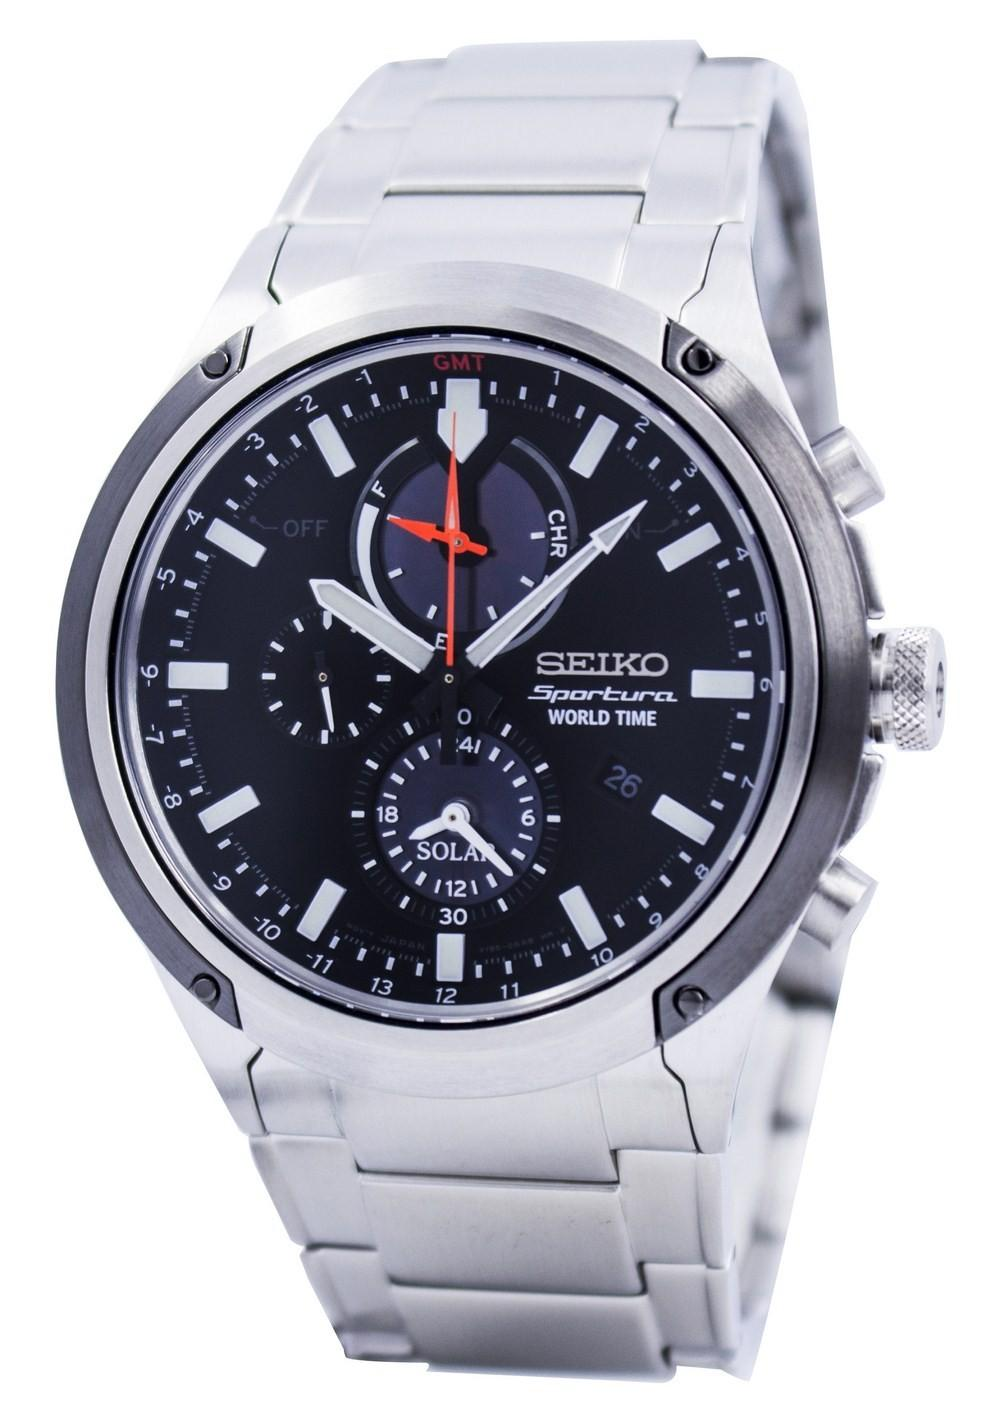 Seiko Sportura Solar World Time Chronograph Ssc479 Ssc479p1 Ssc479p Men's Watch